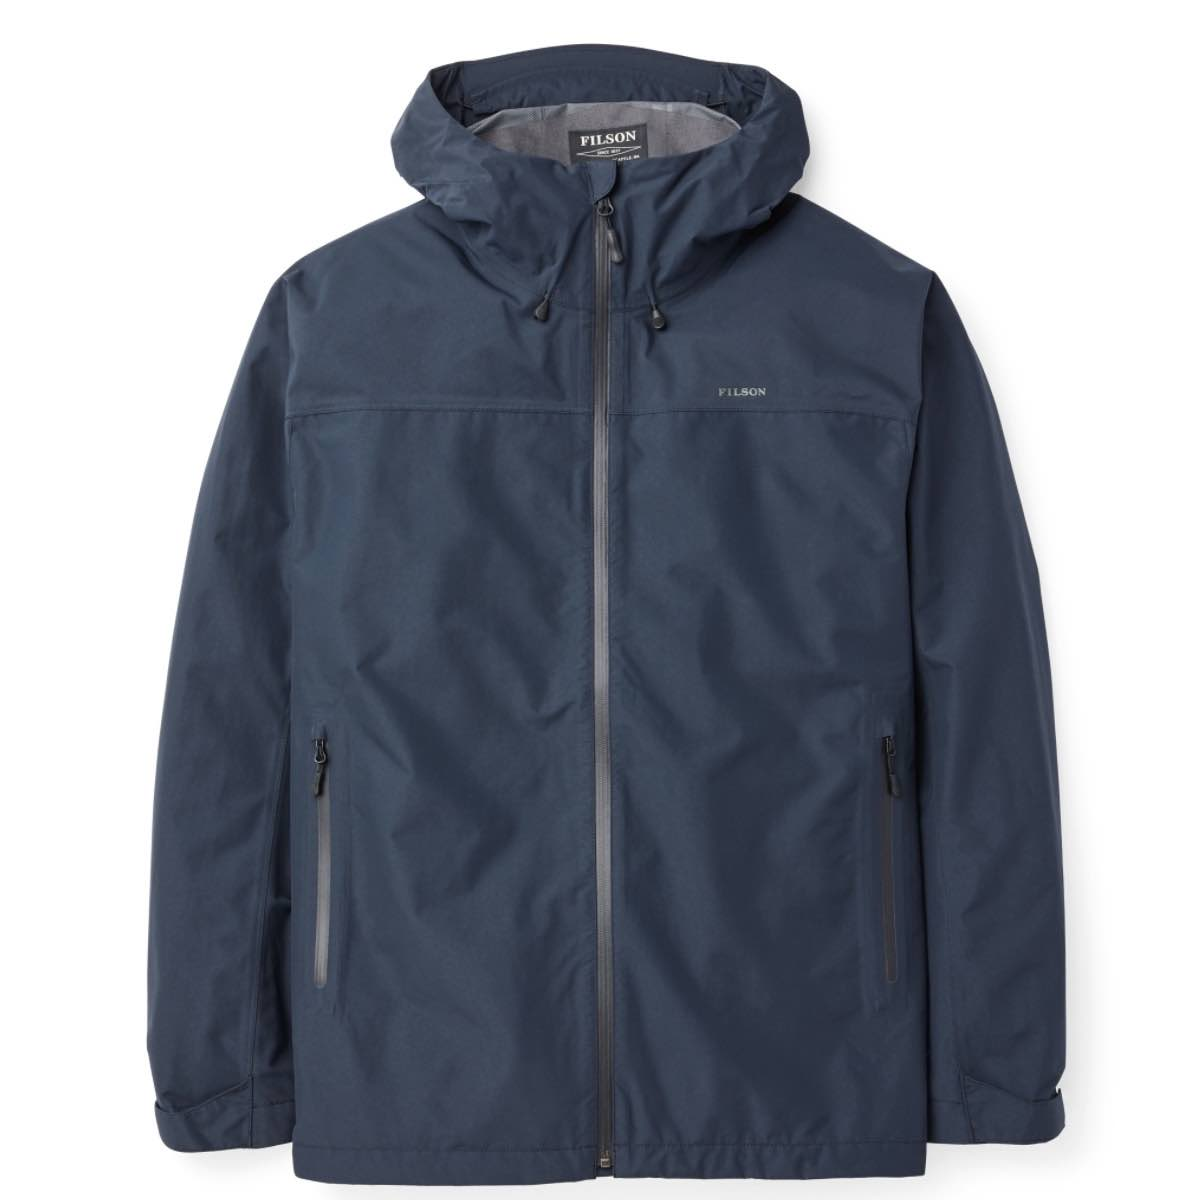 FILSON SWIFTWATER 2.5LAGS SKALLJAKKE HERRE - DARK DENIM